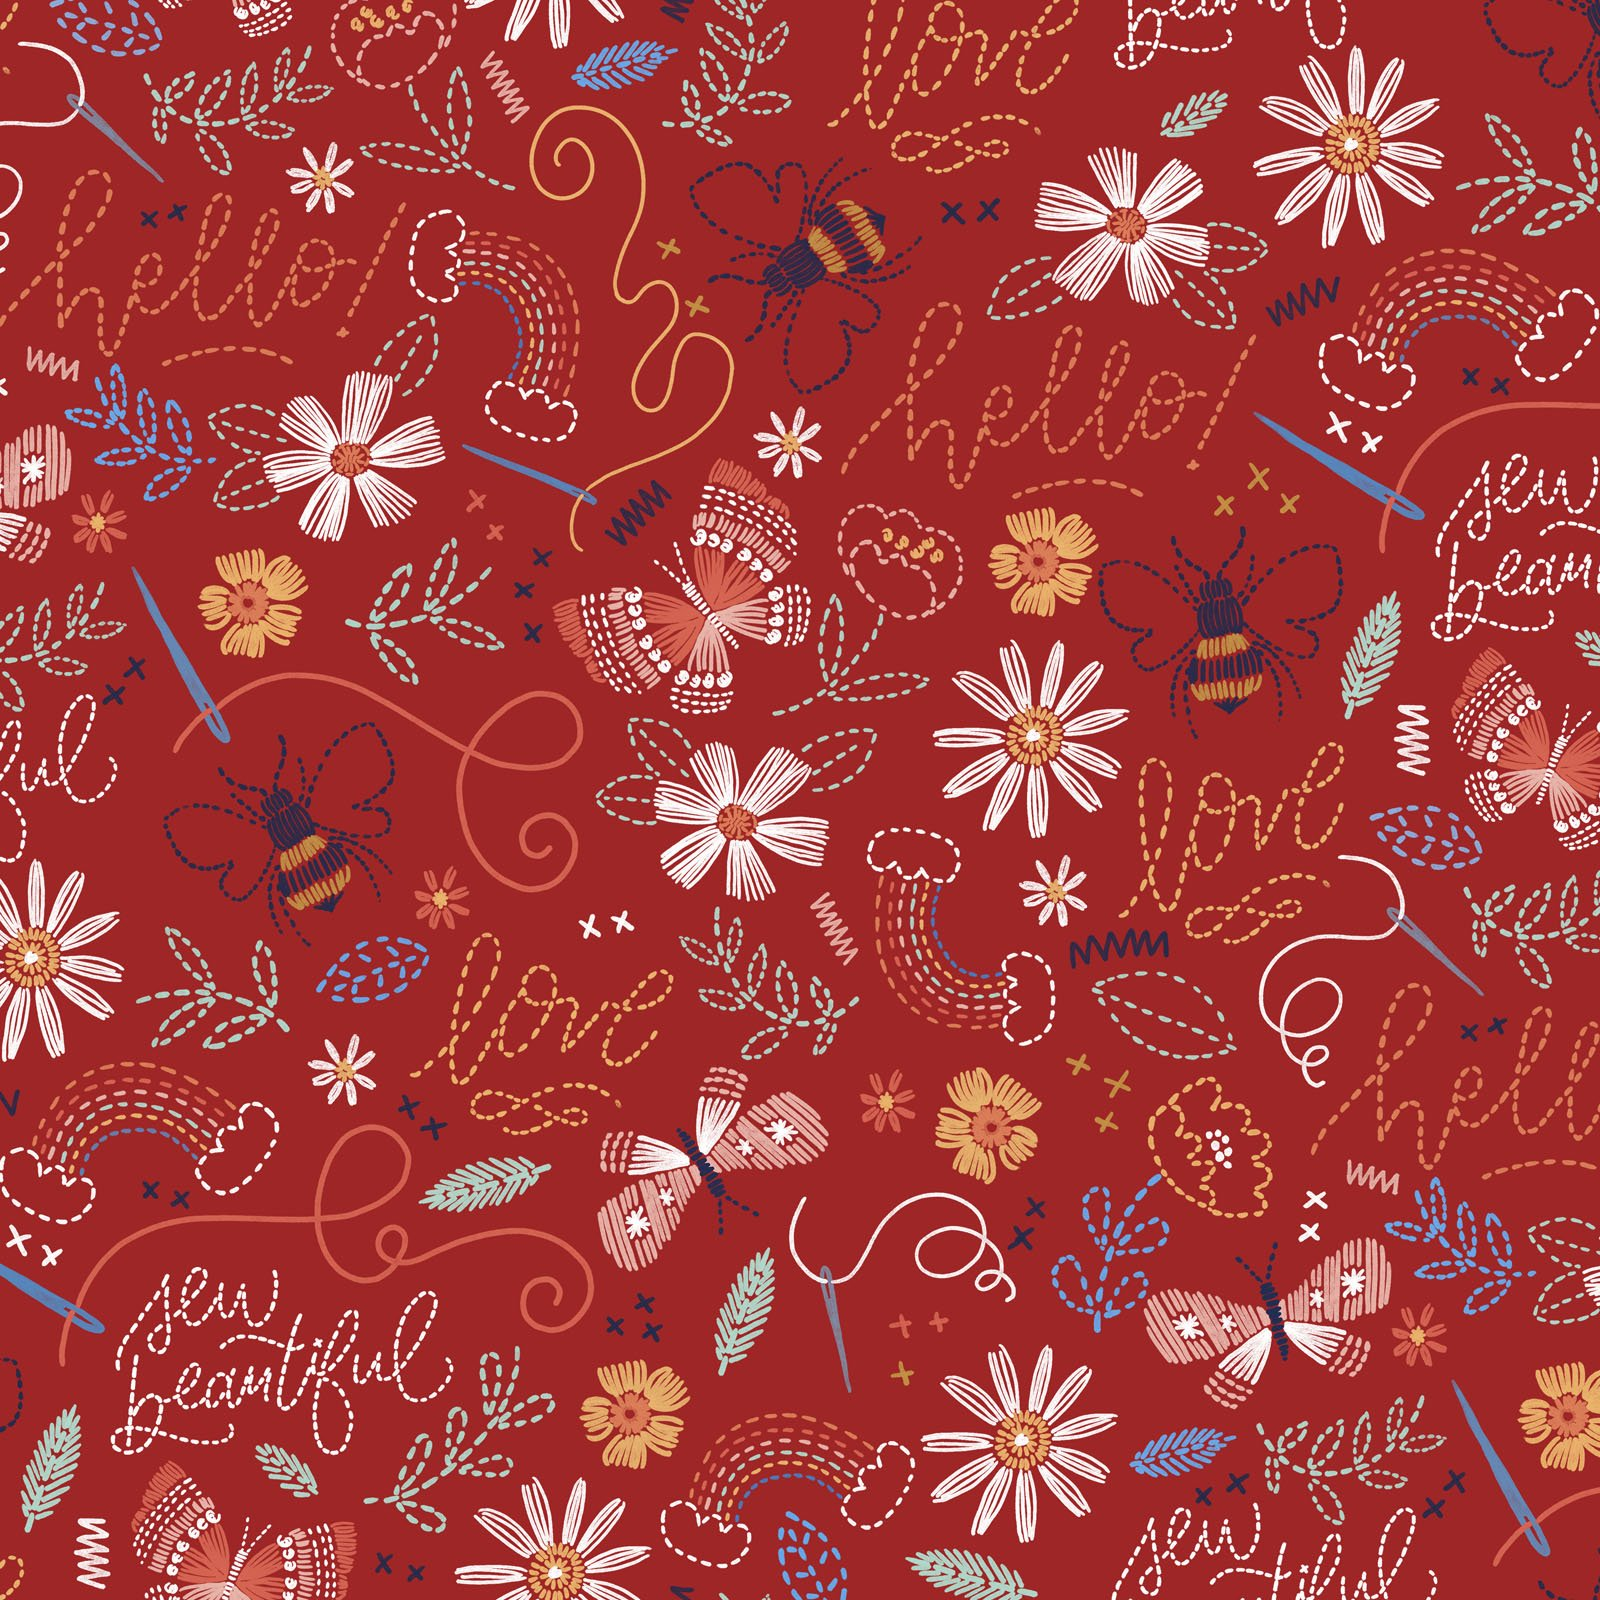 SWLO-4654 R - STITCHED WITH LOVE BY LONI HARRIS STITCHED WORDS RED - ARRIVING IN MARCH 2022